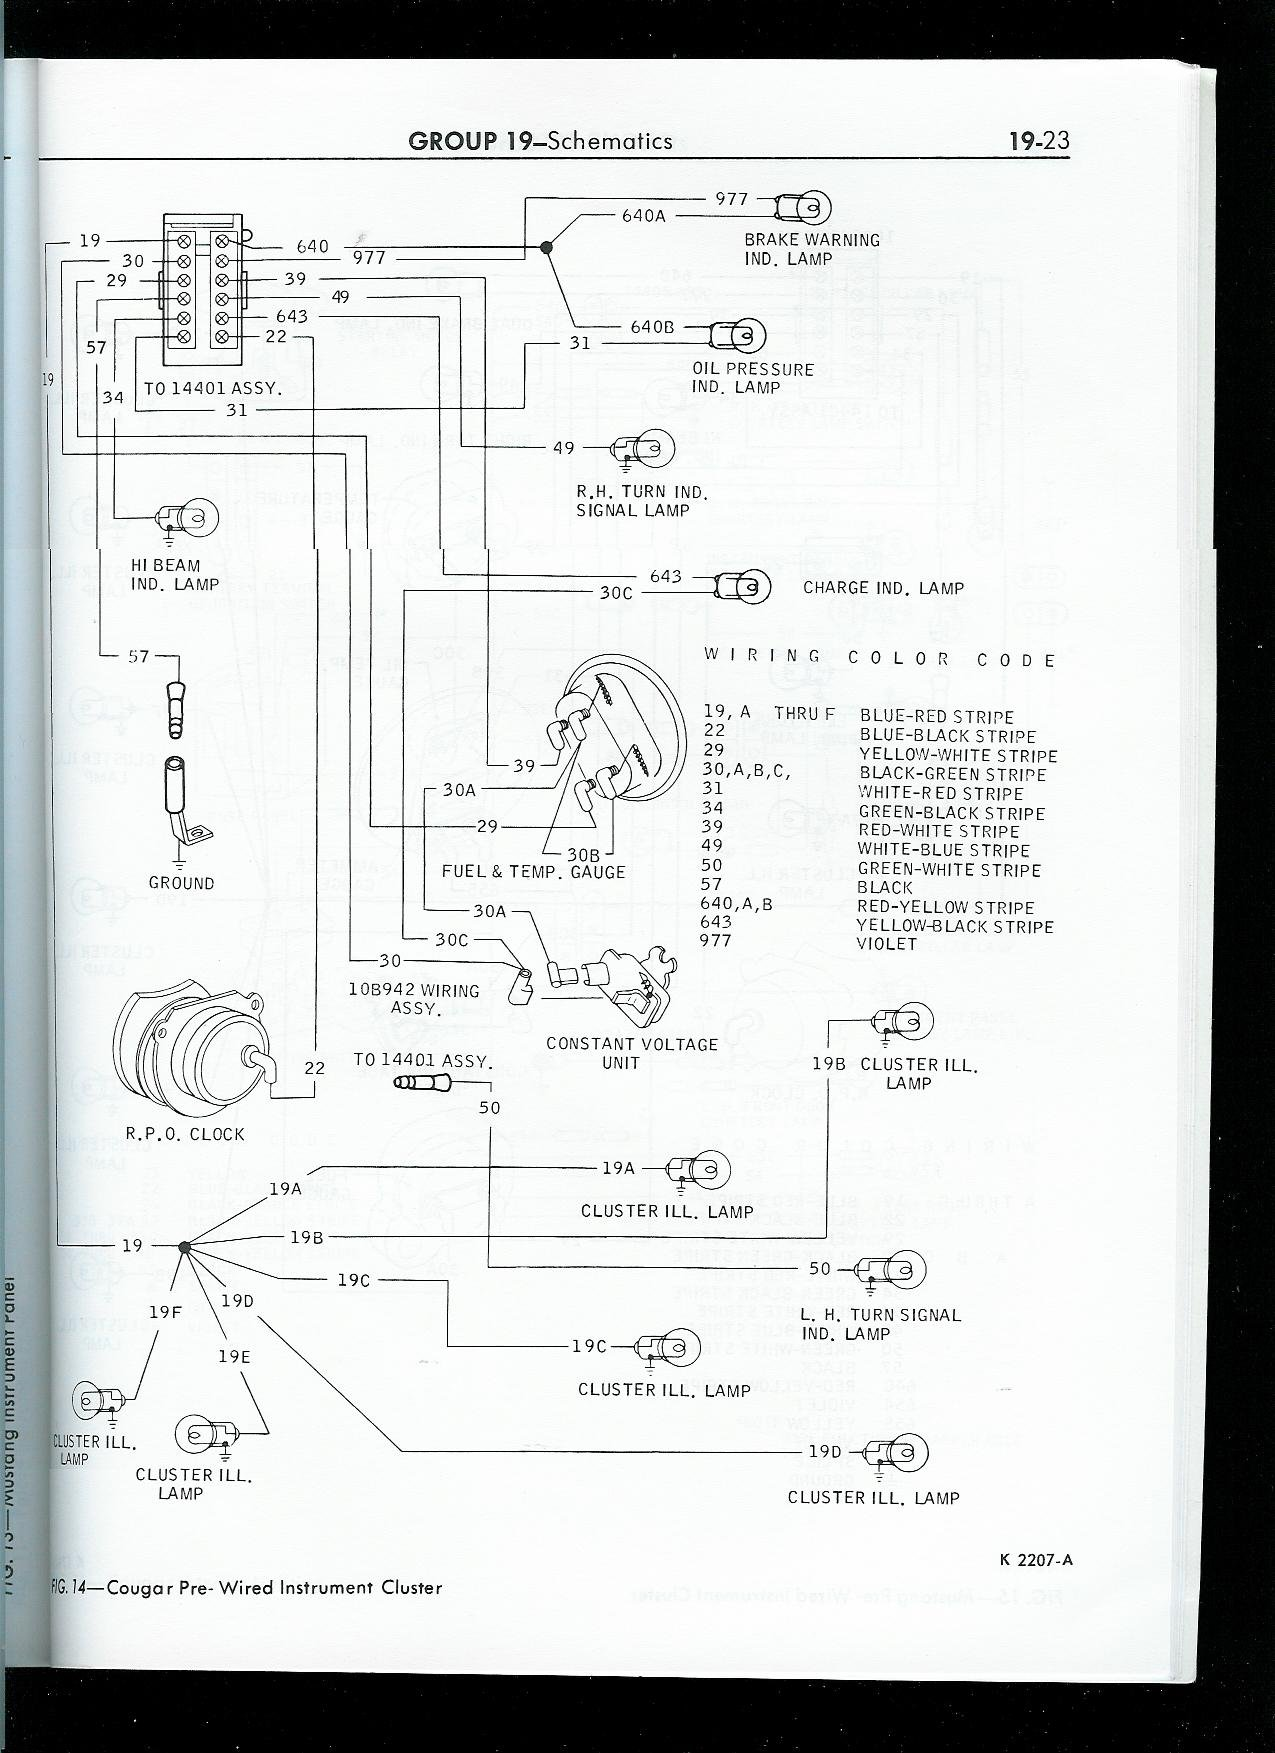 1968 Mustang Instrument Panel Diagram Data Wiring 1970 Schematic For Lights 67 Dash